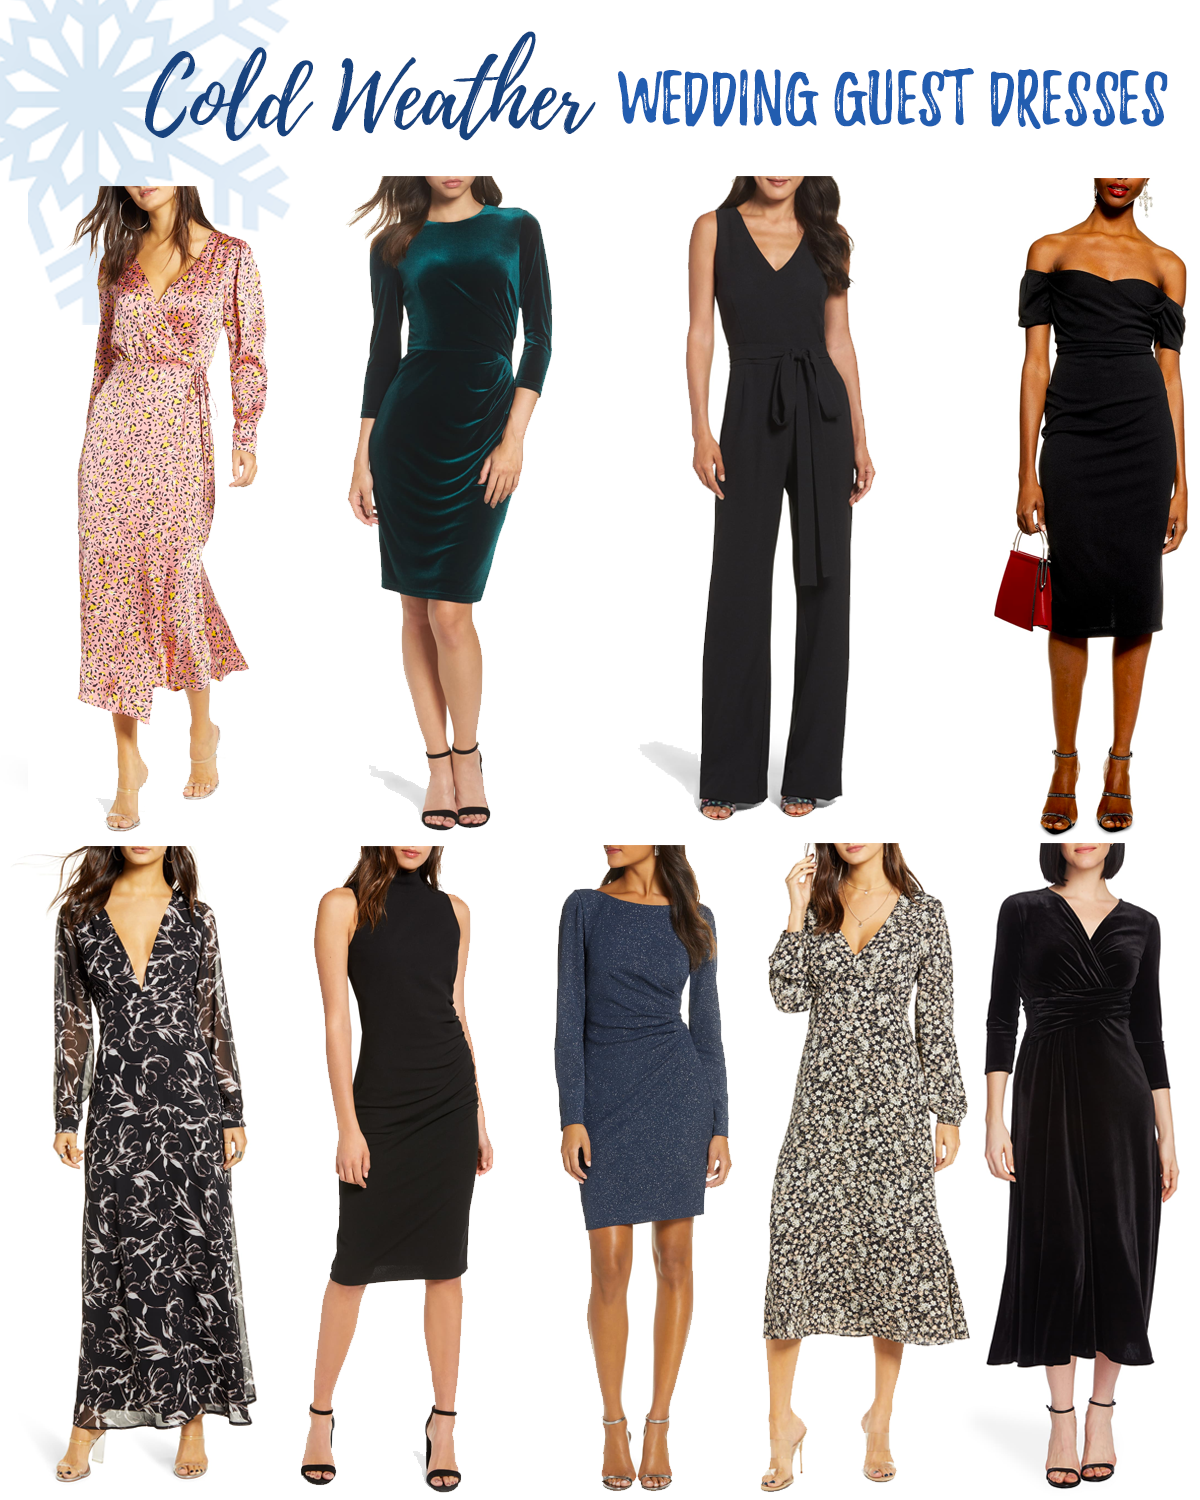 Cold Weather Wedding Guest Dresses